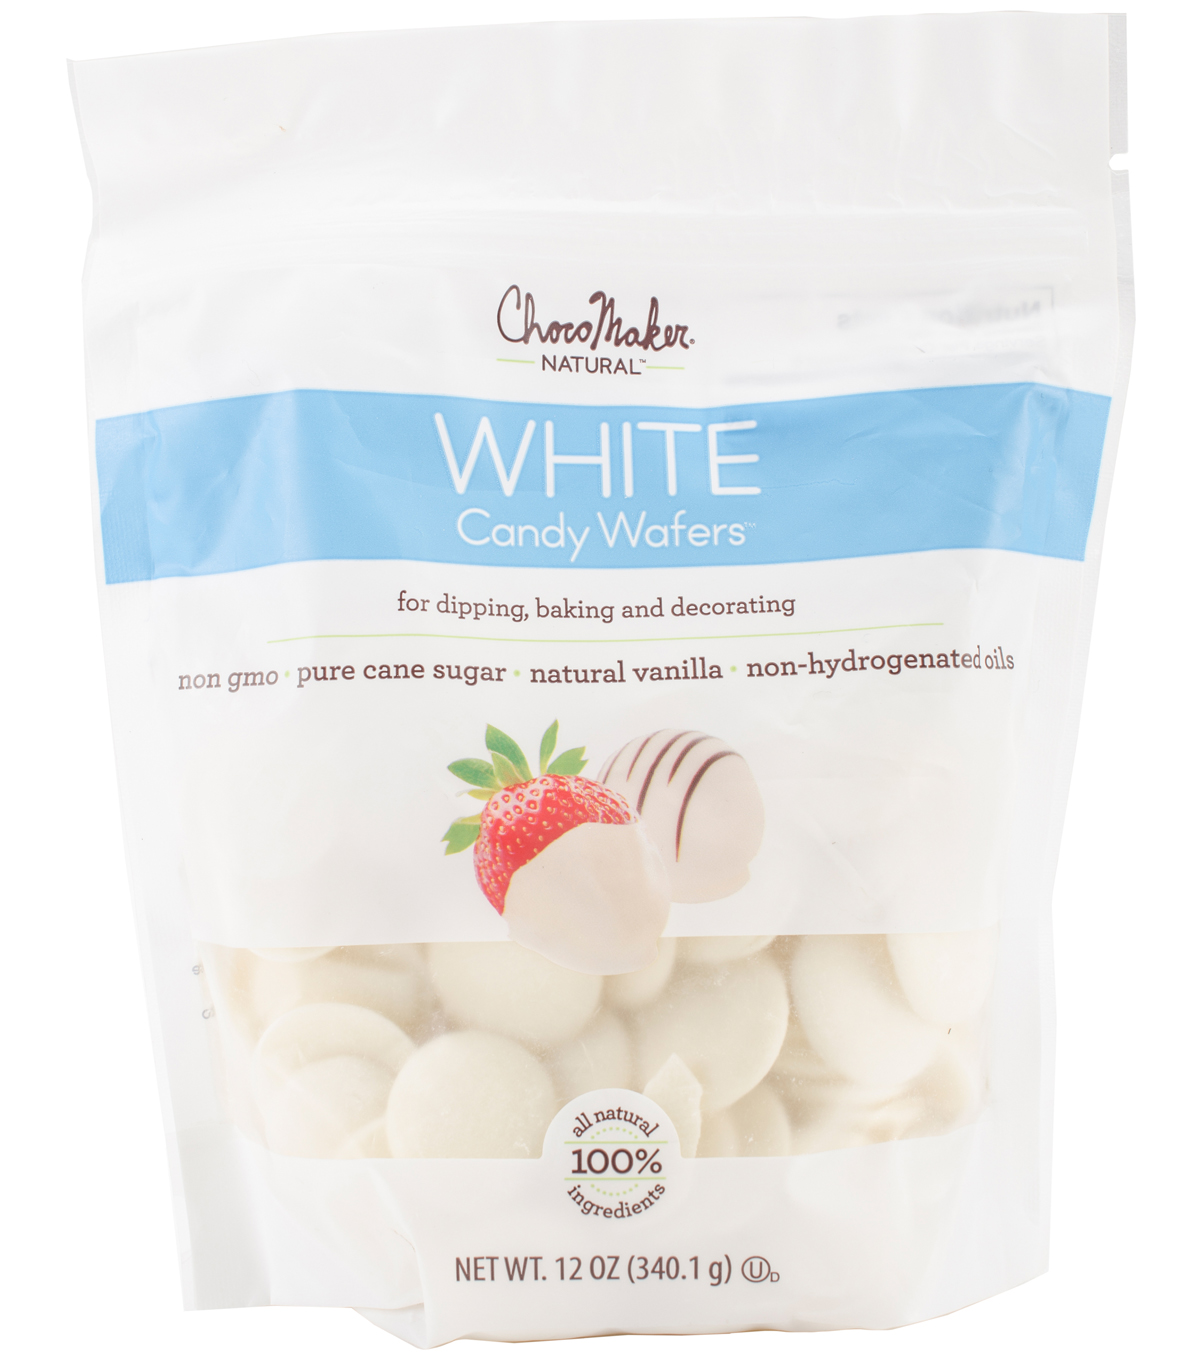 ChocoMaker Natural 12 oz. Vanilla Candy Wafers Pouch-White